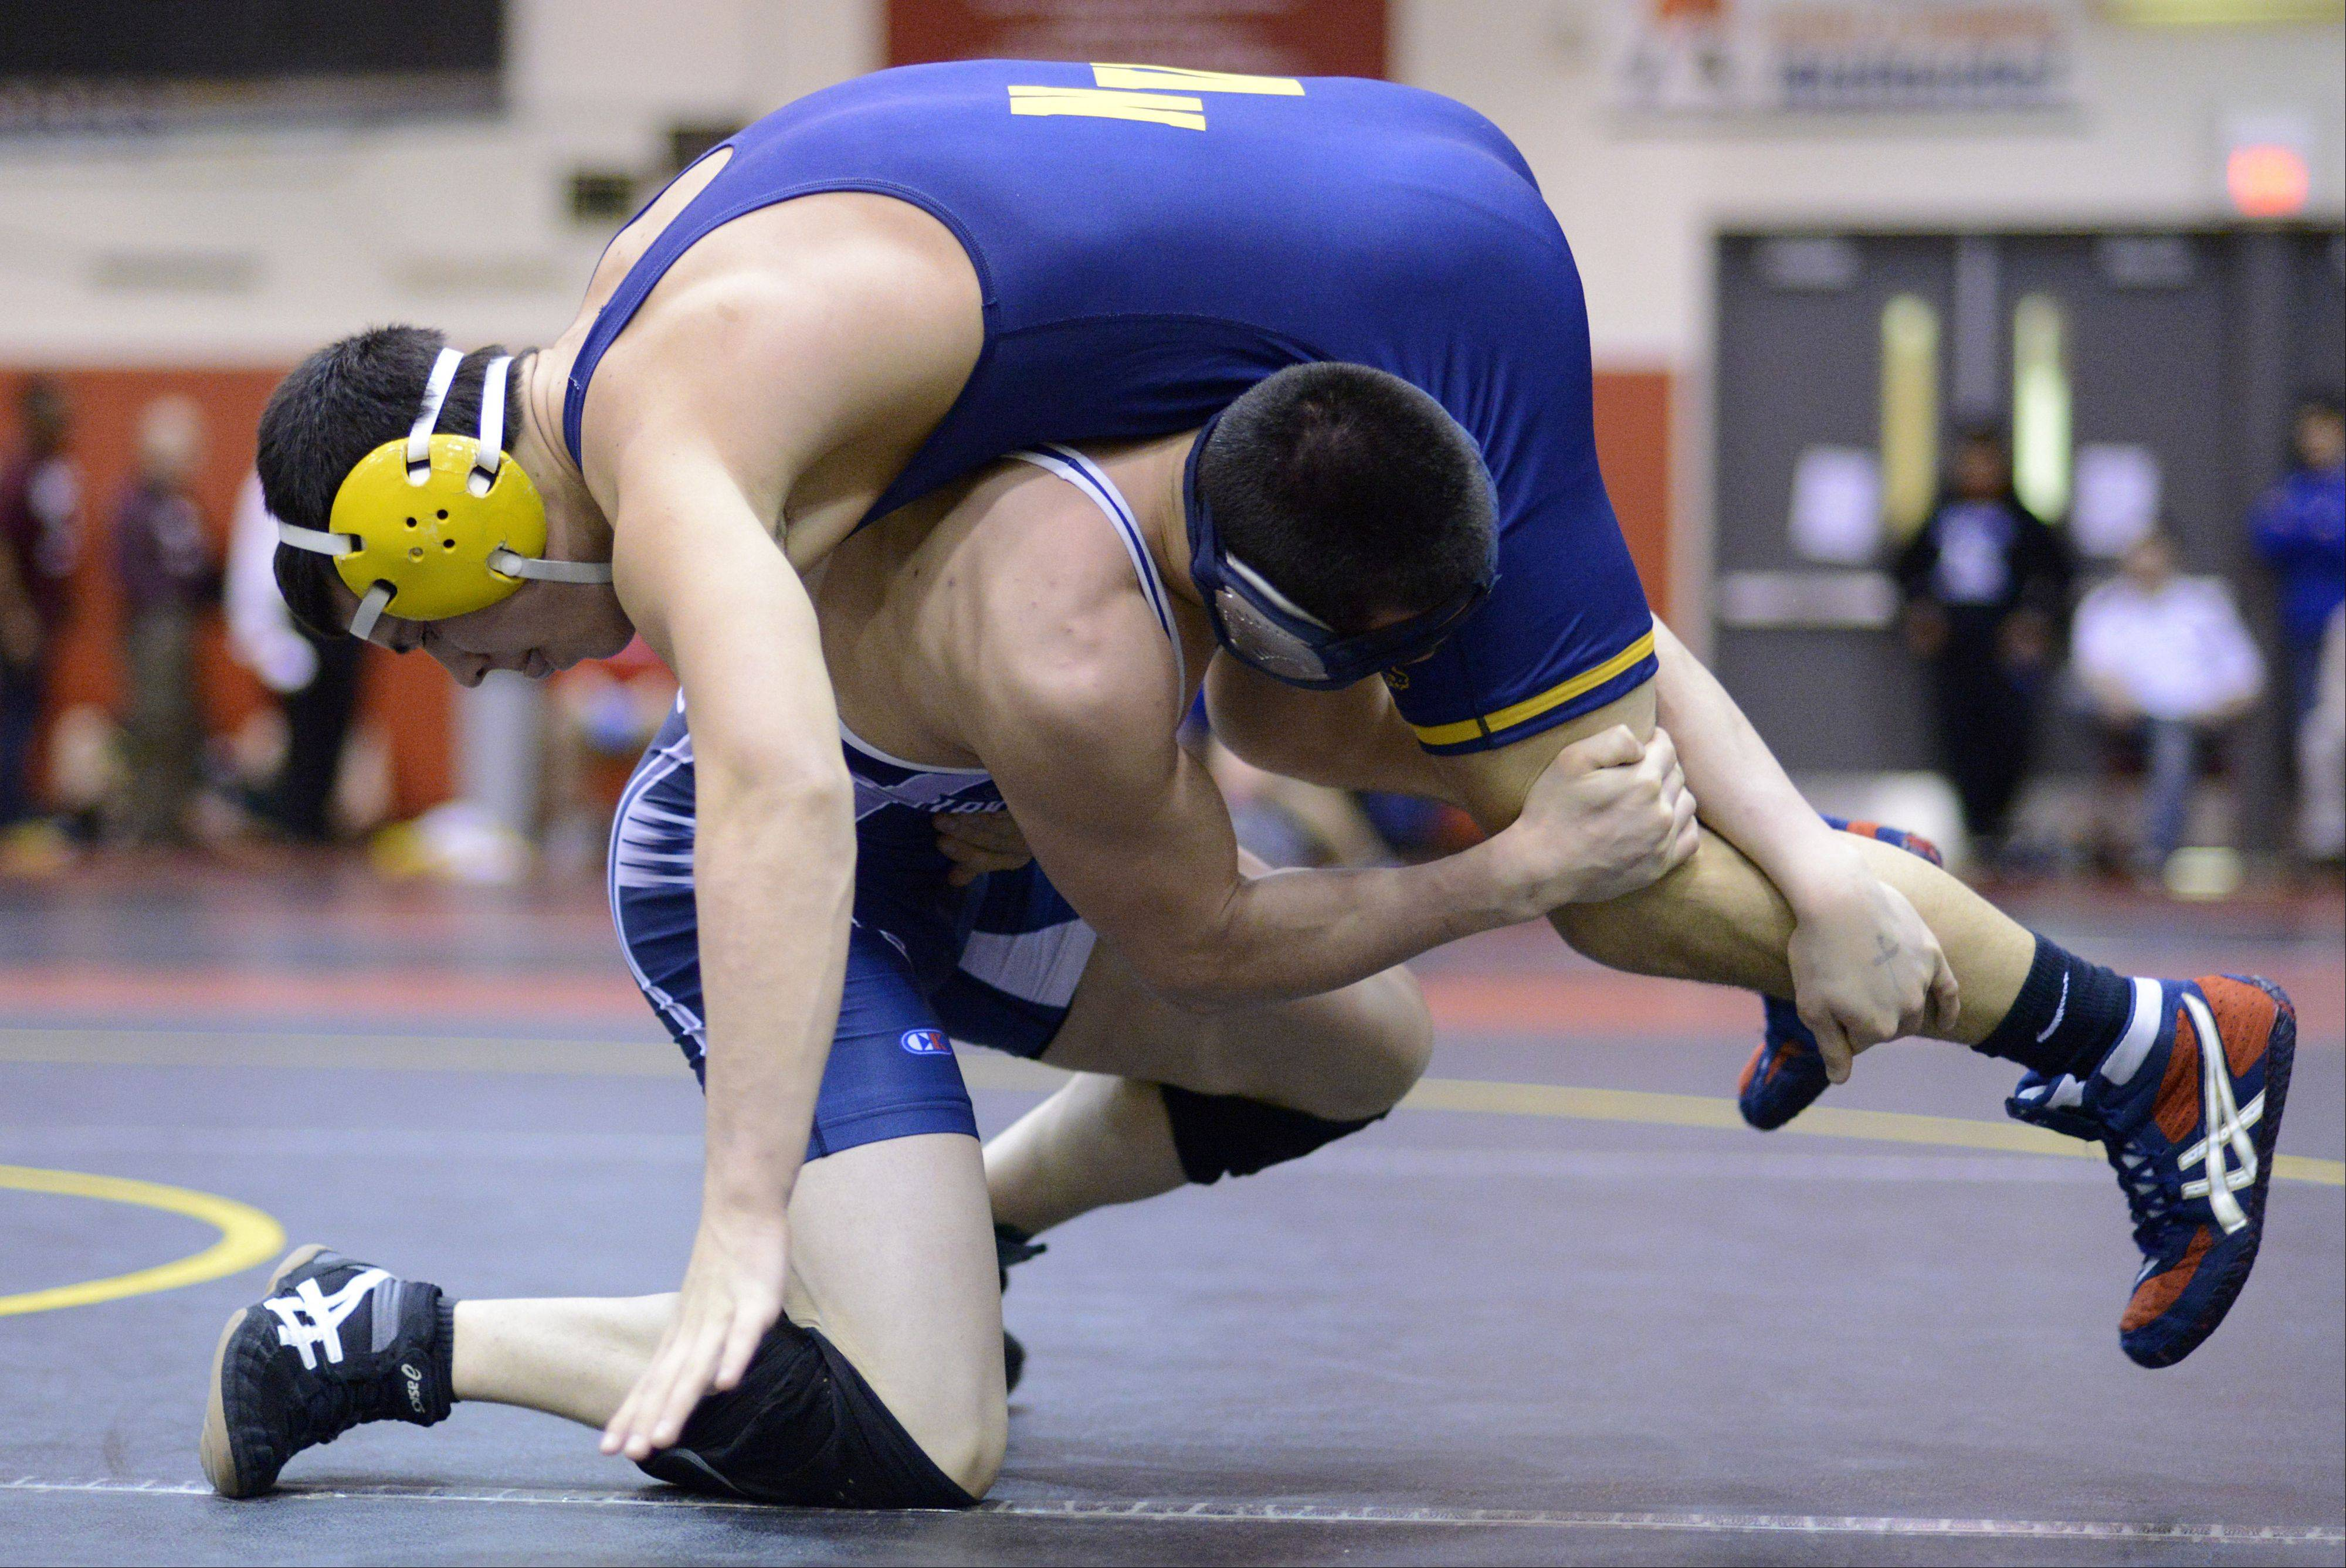 Neuqua Valley's Brent Lindenman and Lake Park's Henry Stoever in the 170-pound match of the semifinals in the Upstate Eight mega conference on Saturday, January 19. Stoever took the win.